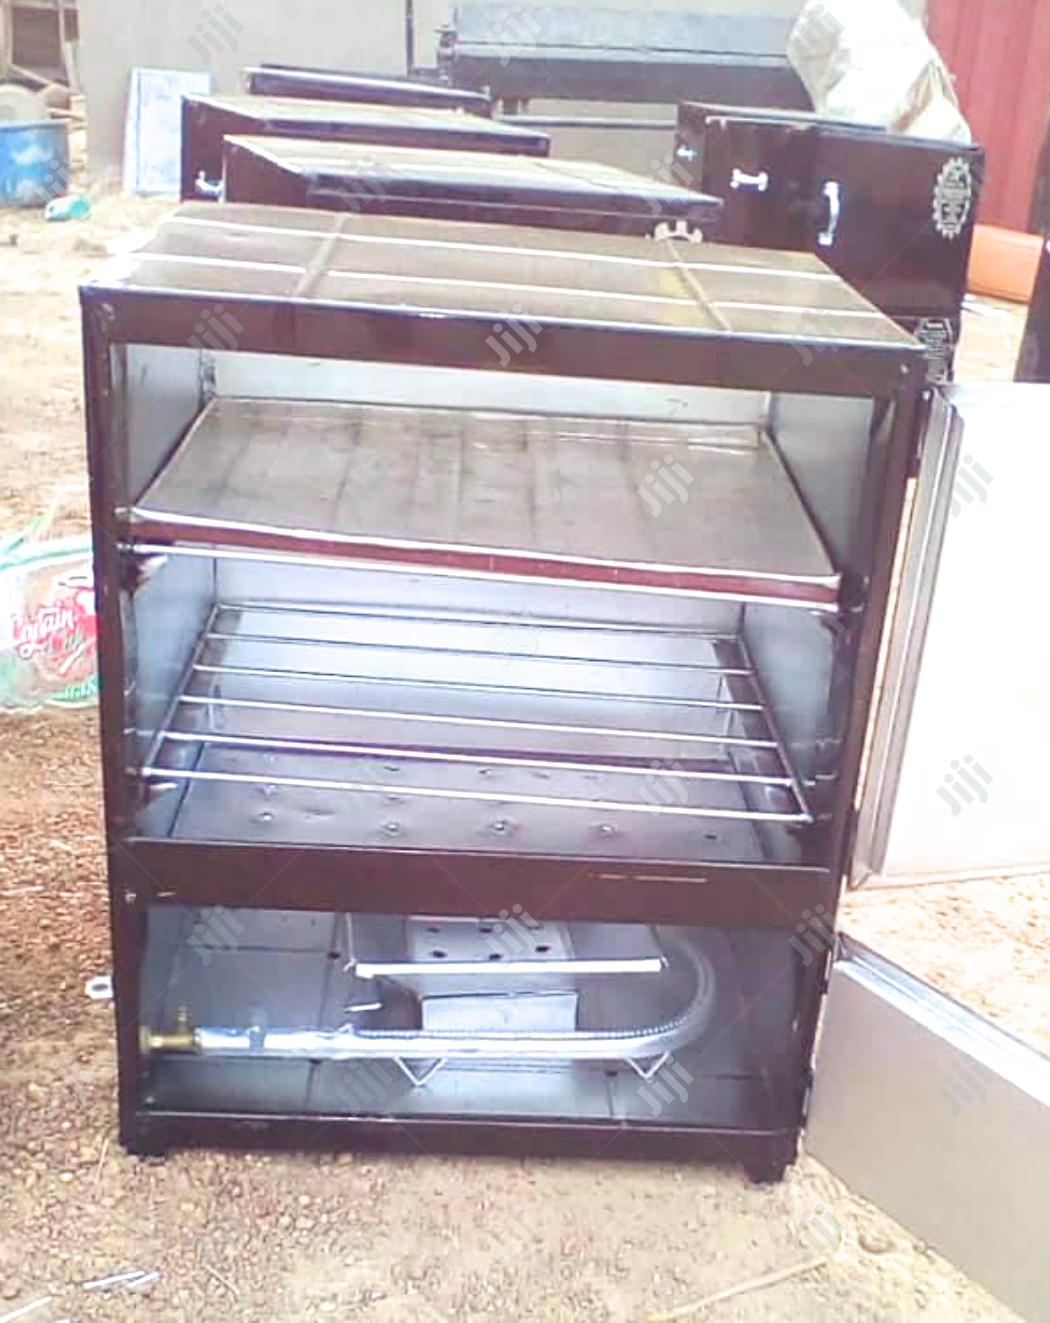 Easytech Enterprise Charcoal And Gas Oven | Industrial Ovens for sale in Ilorin West, Kwara State, Nigeria